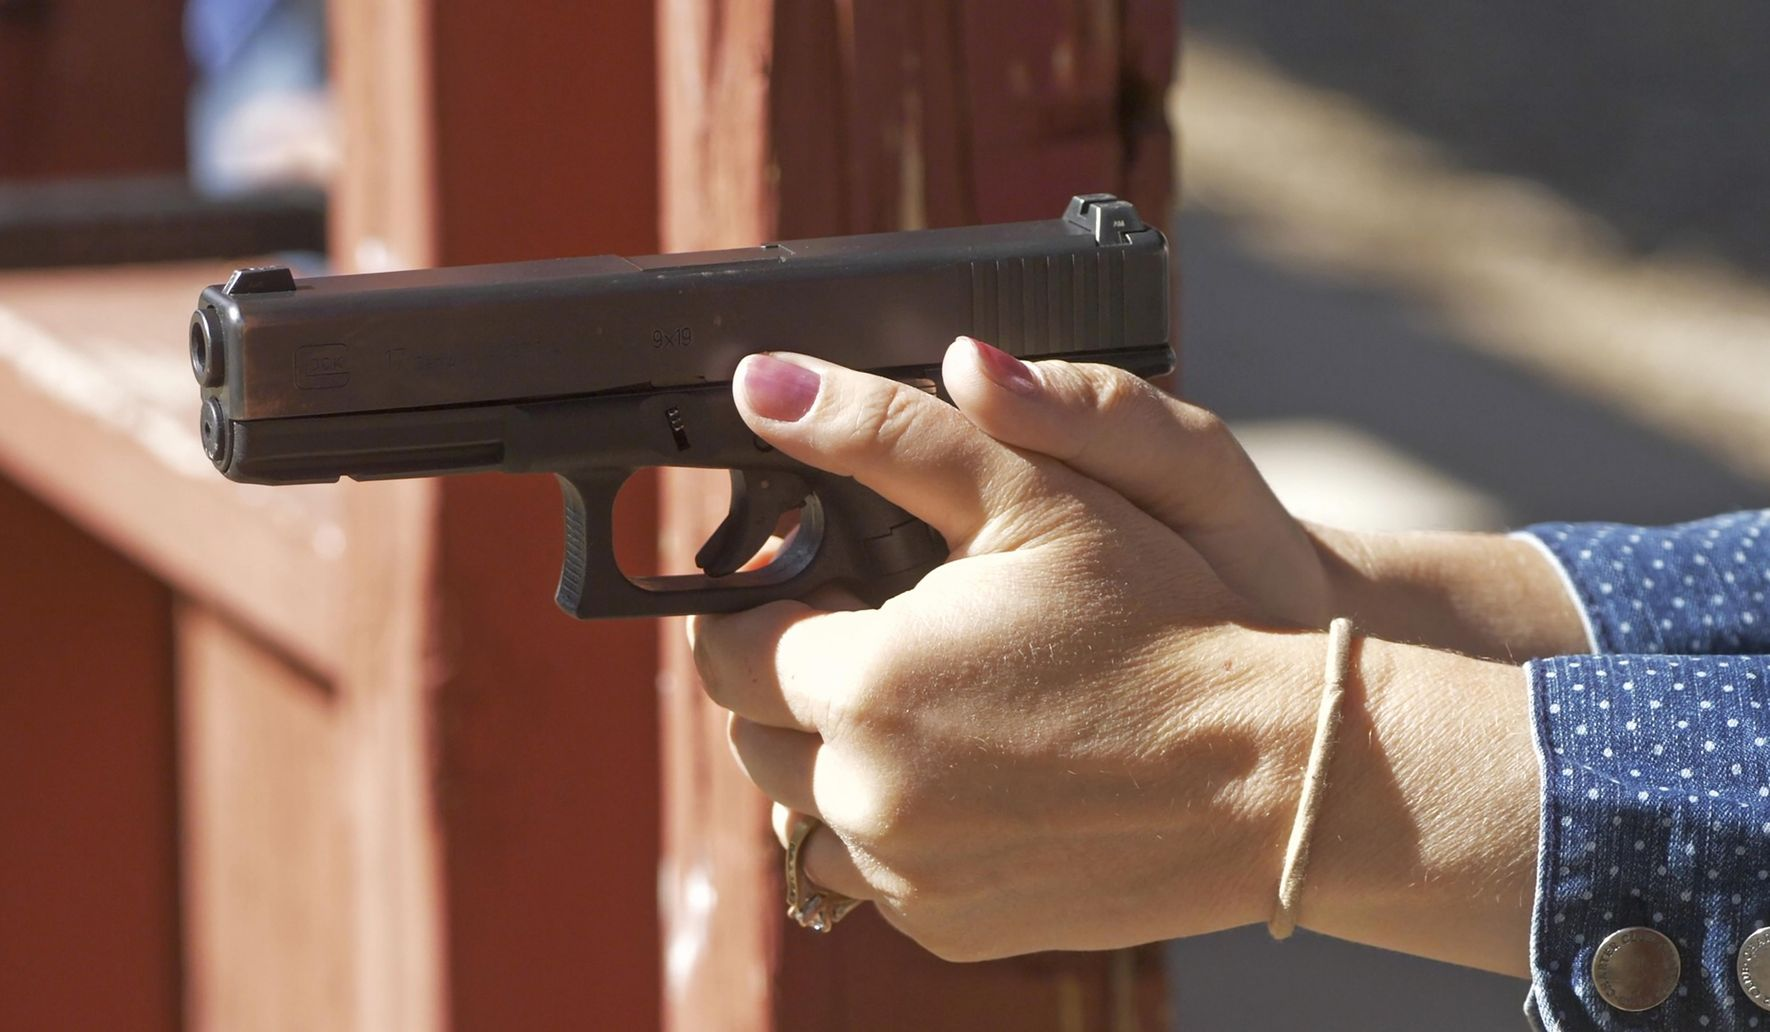 Florida teachers now allowed to carry guns in classroom